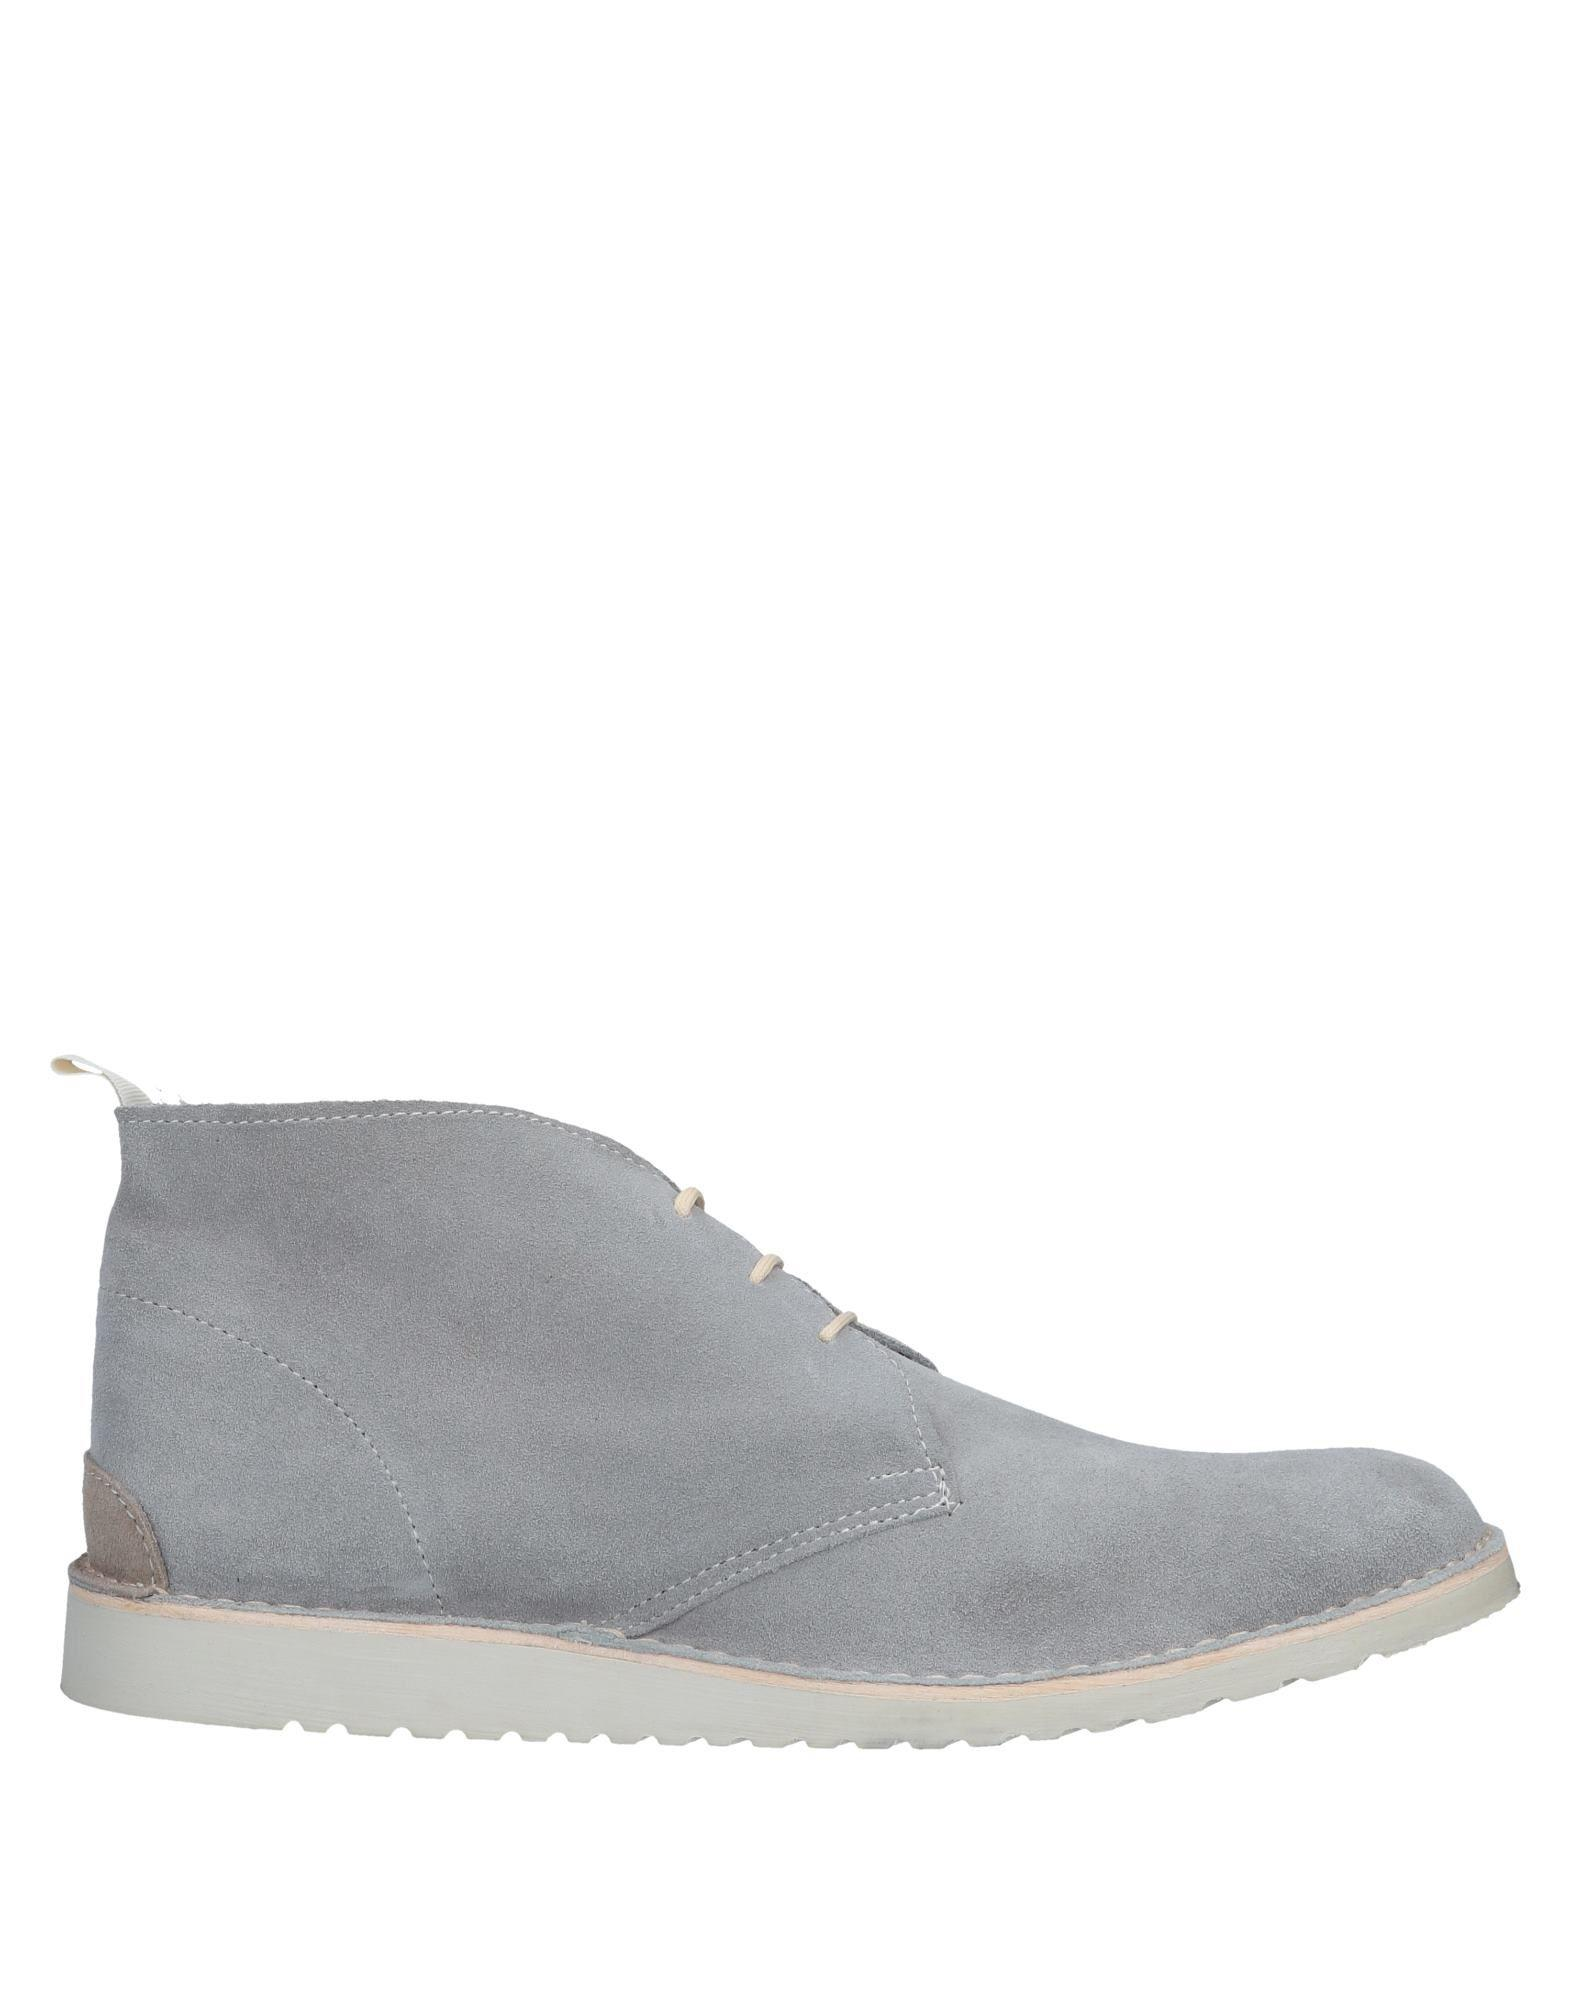 Boots in Gray Angelo Men for Lyst Nardelli Ankle SxHZw1H7q